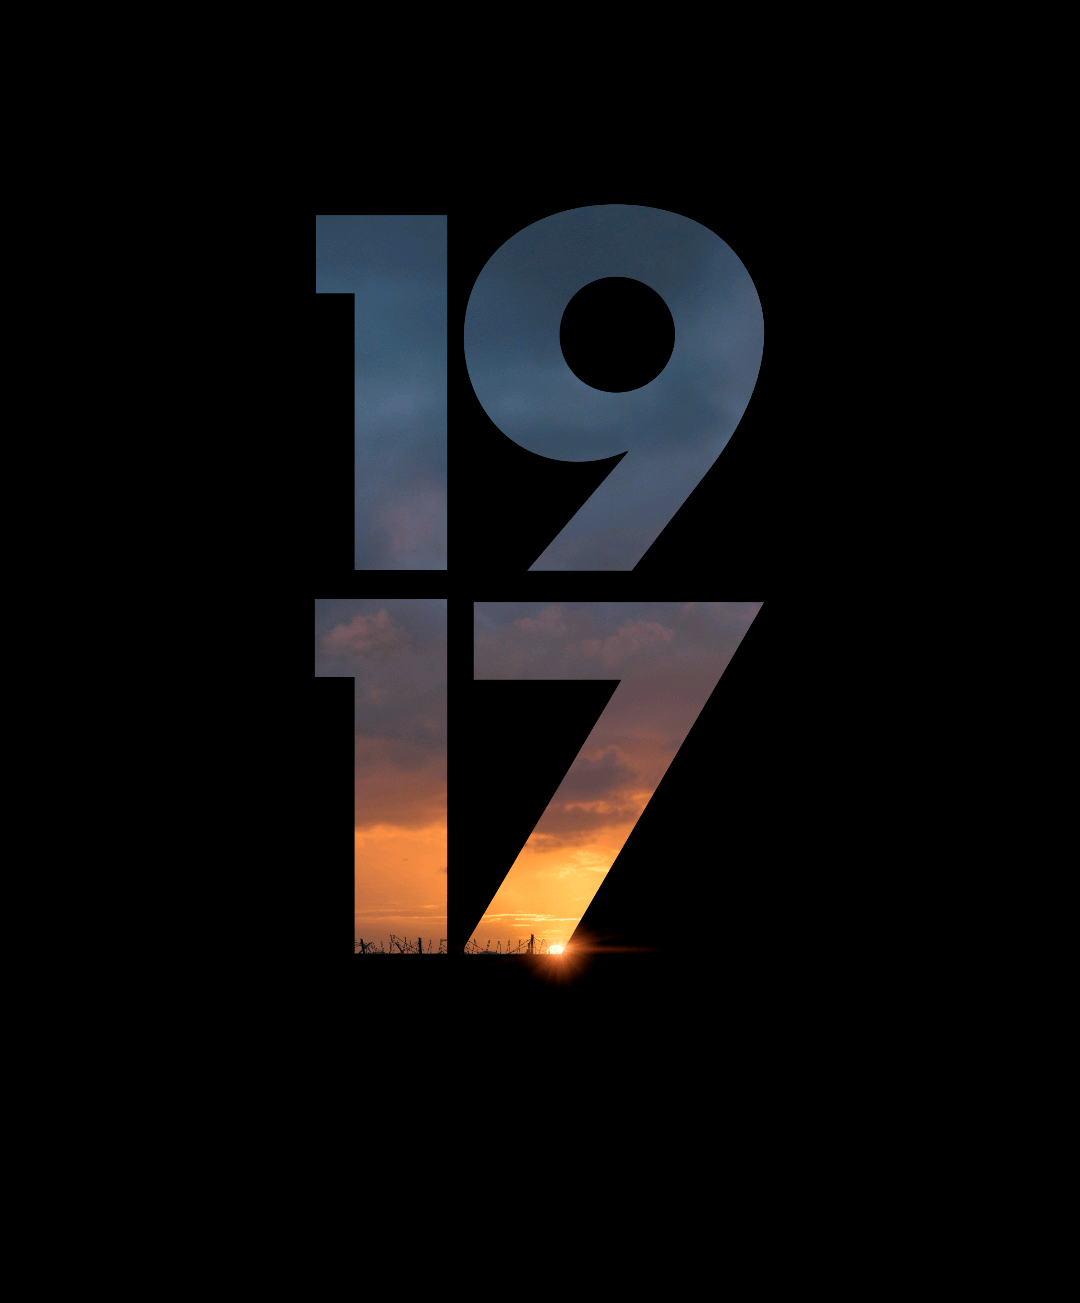 1917 3.png